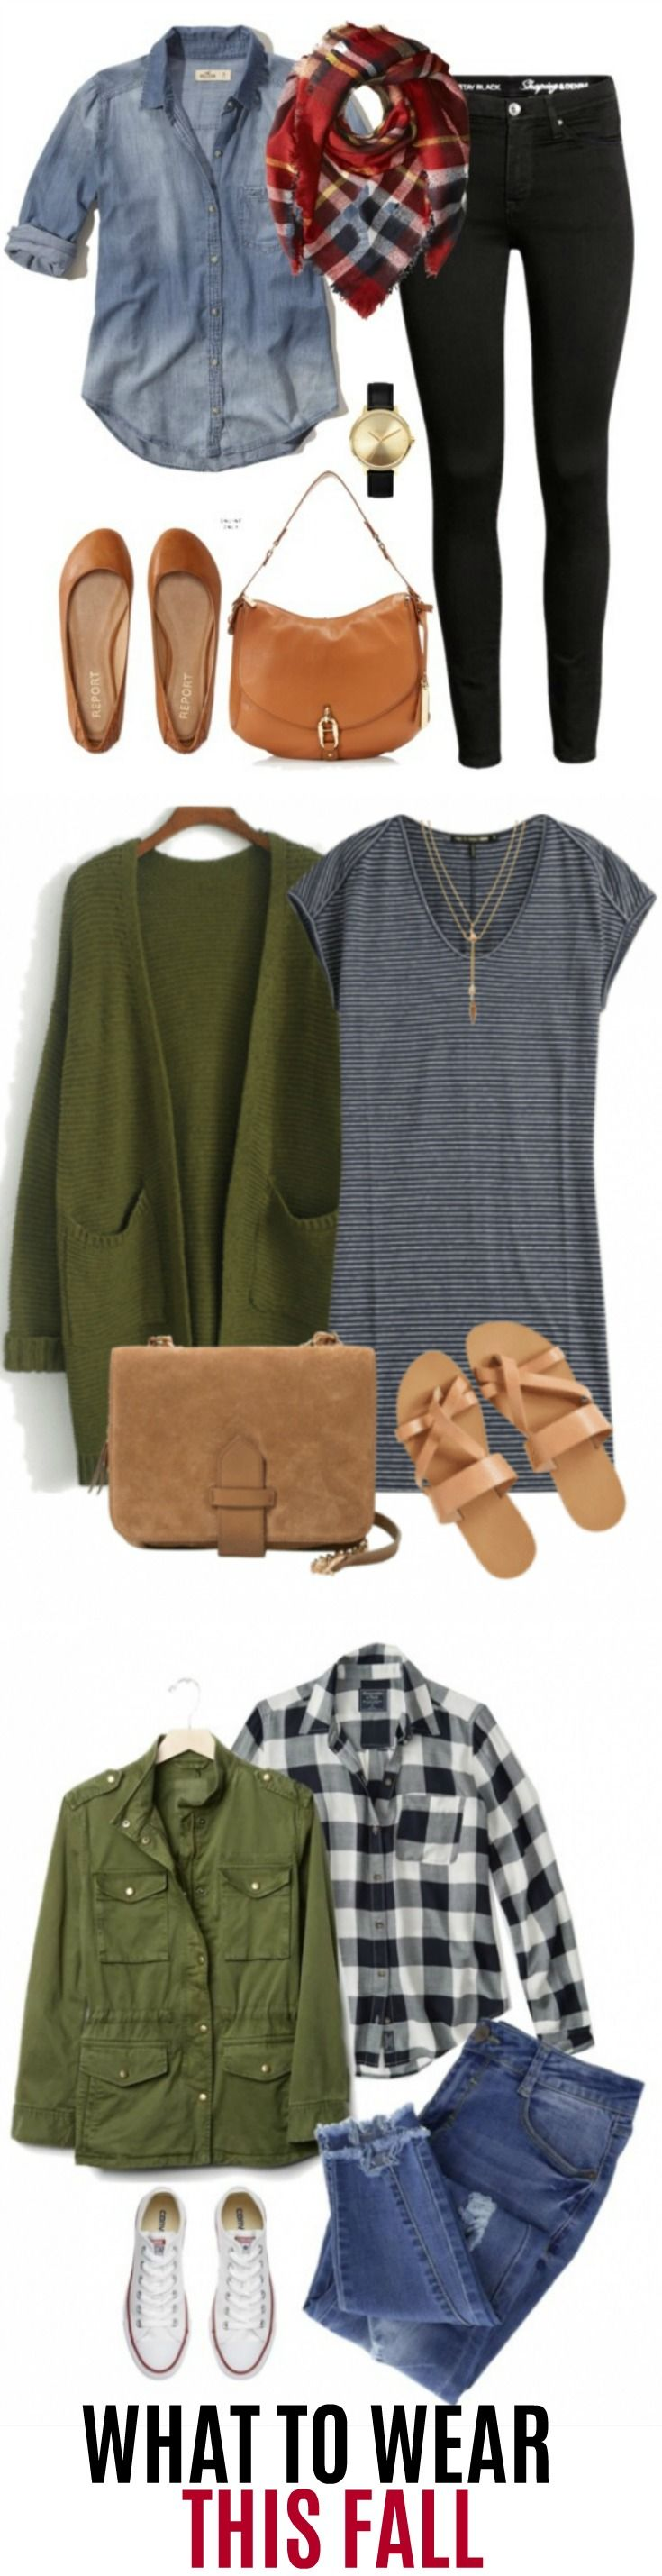 Fall outfit ideas: Get some inspiration for what to wear this month with these 15 outfit ideas for September.